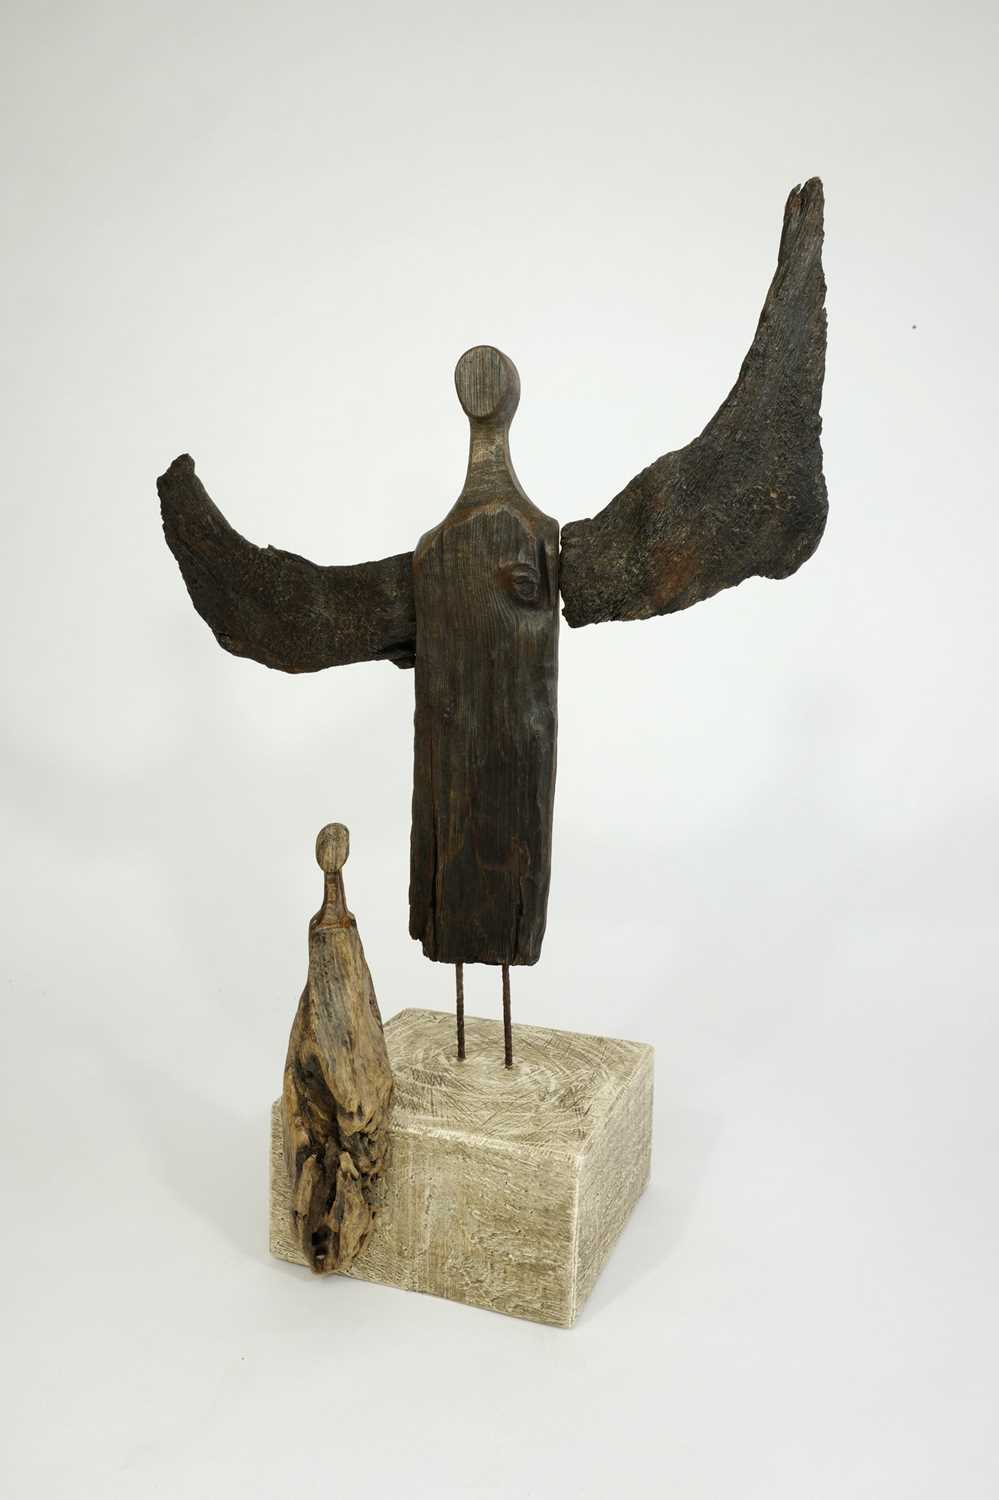 Roger Hardy The Guardian Sculpture & Visit to the Artist's Studio in Suffolk The Guardian